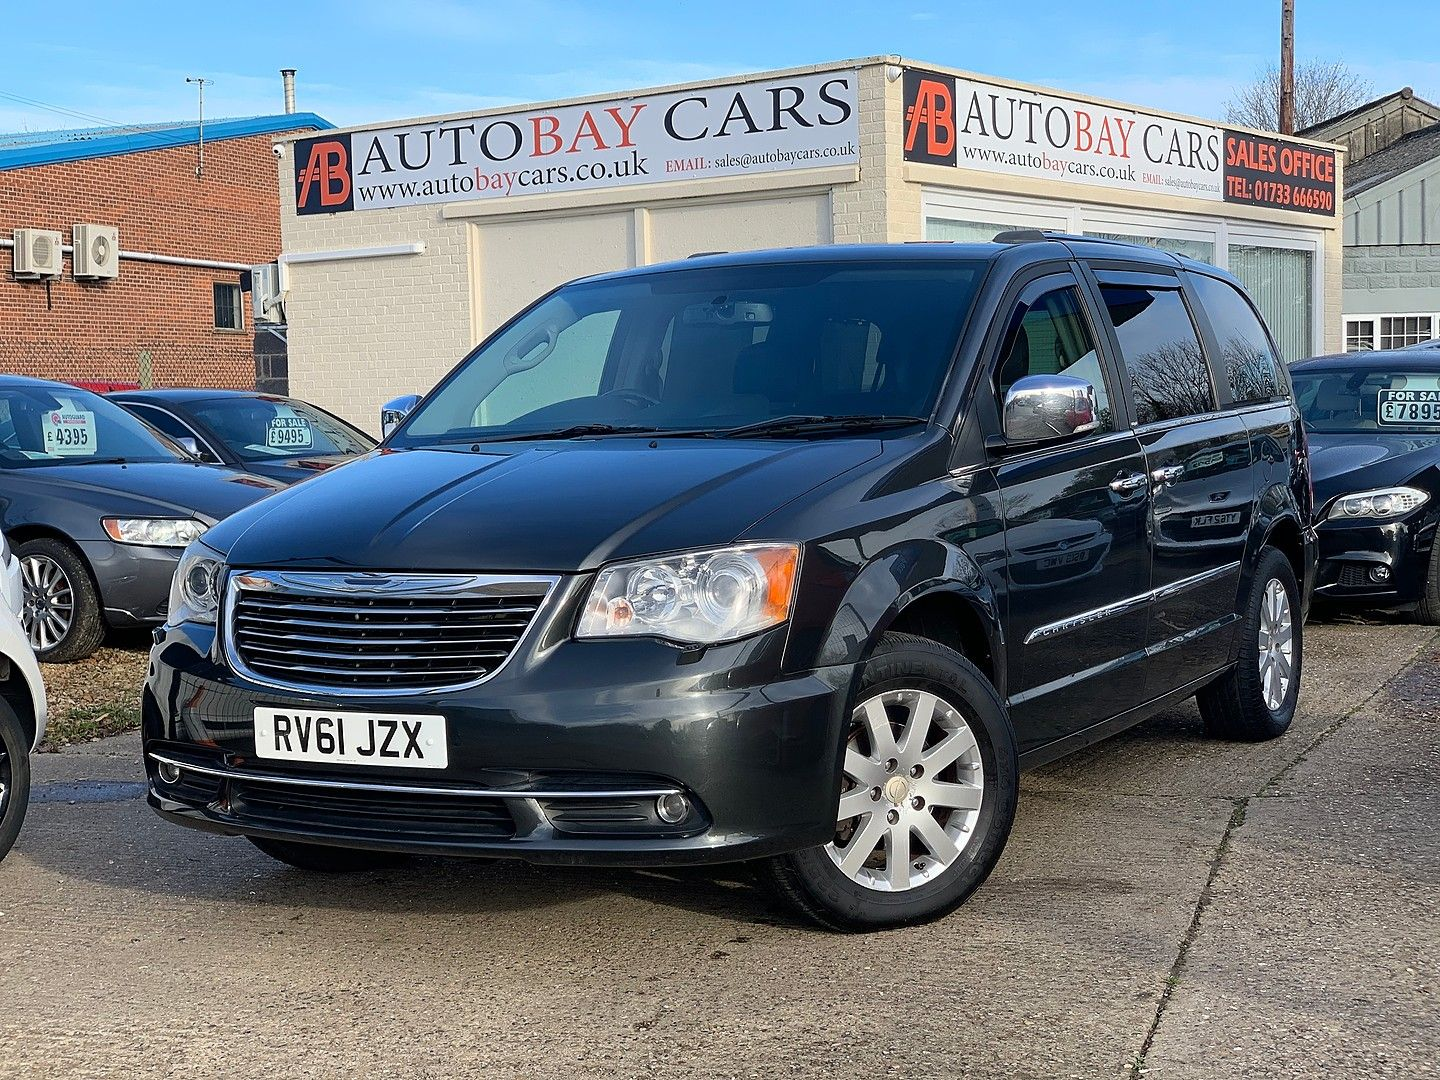 CHRYSLERVoyager2.8 CRD LX Auto for sale